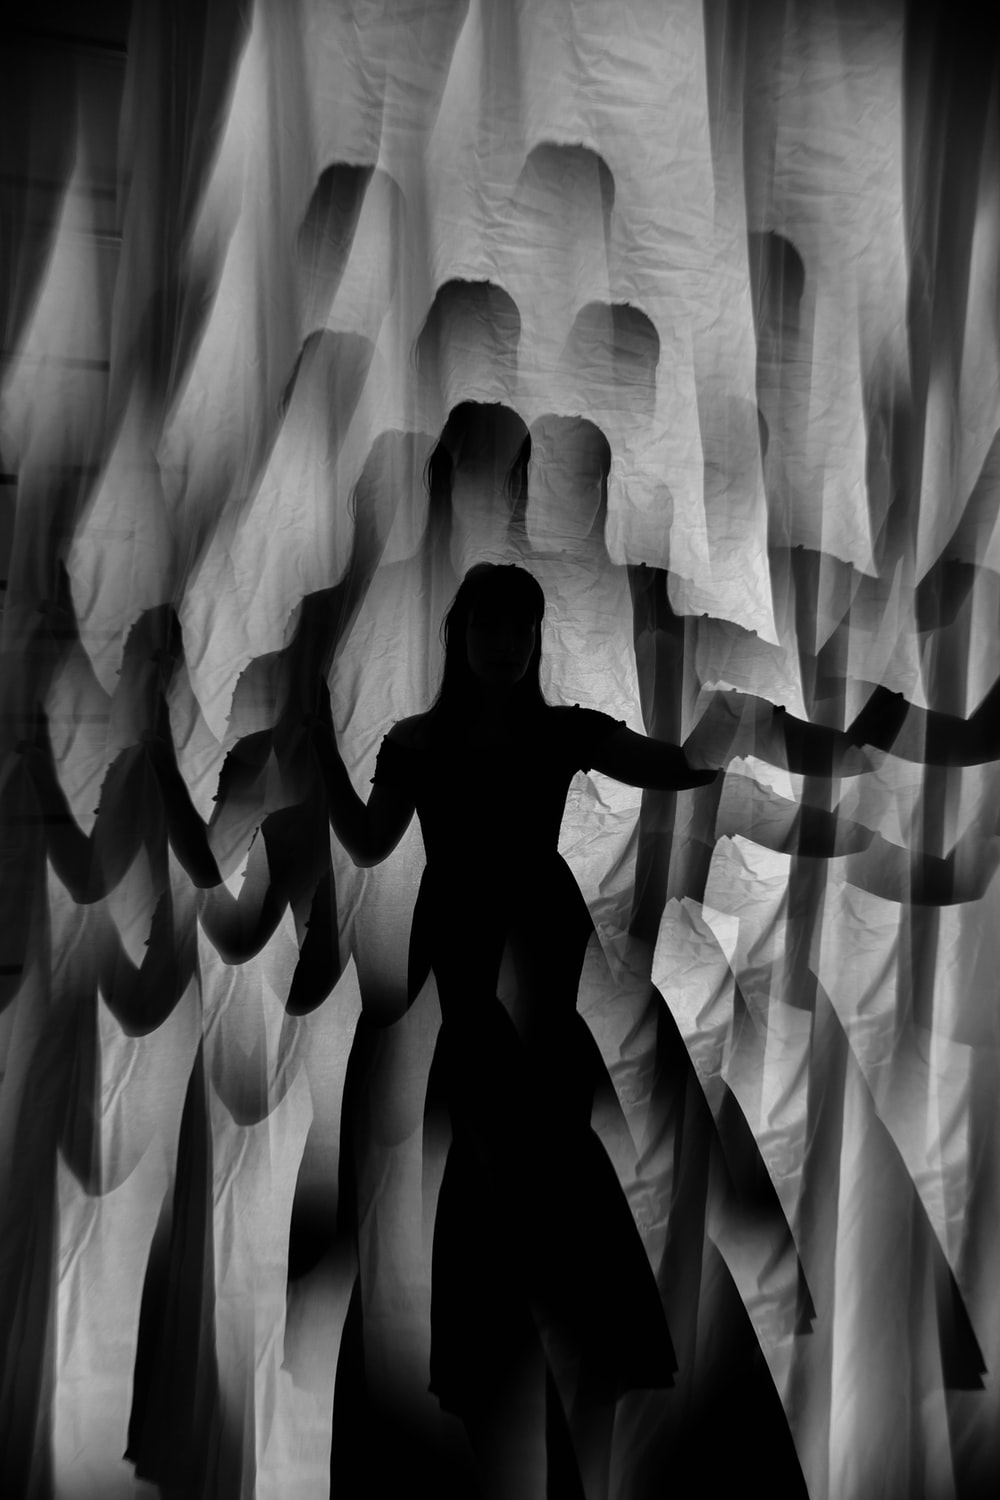 silhouette of man in a white curtain